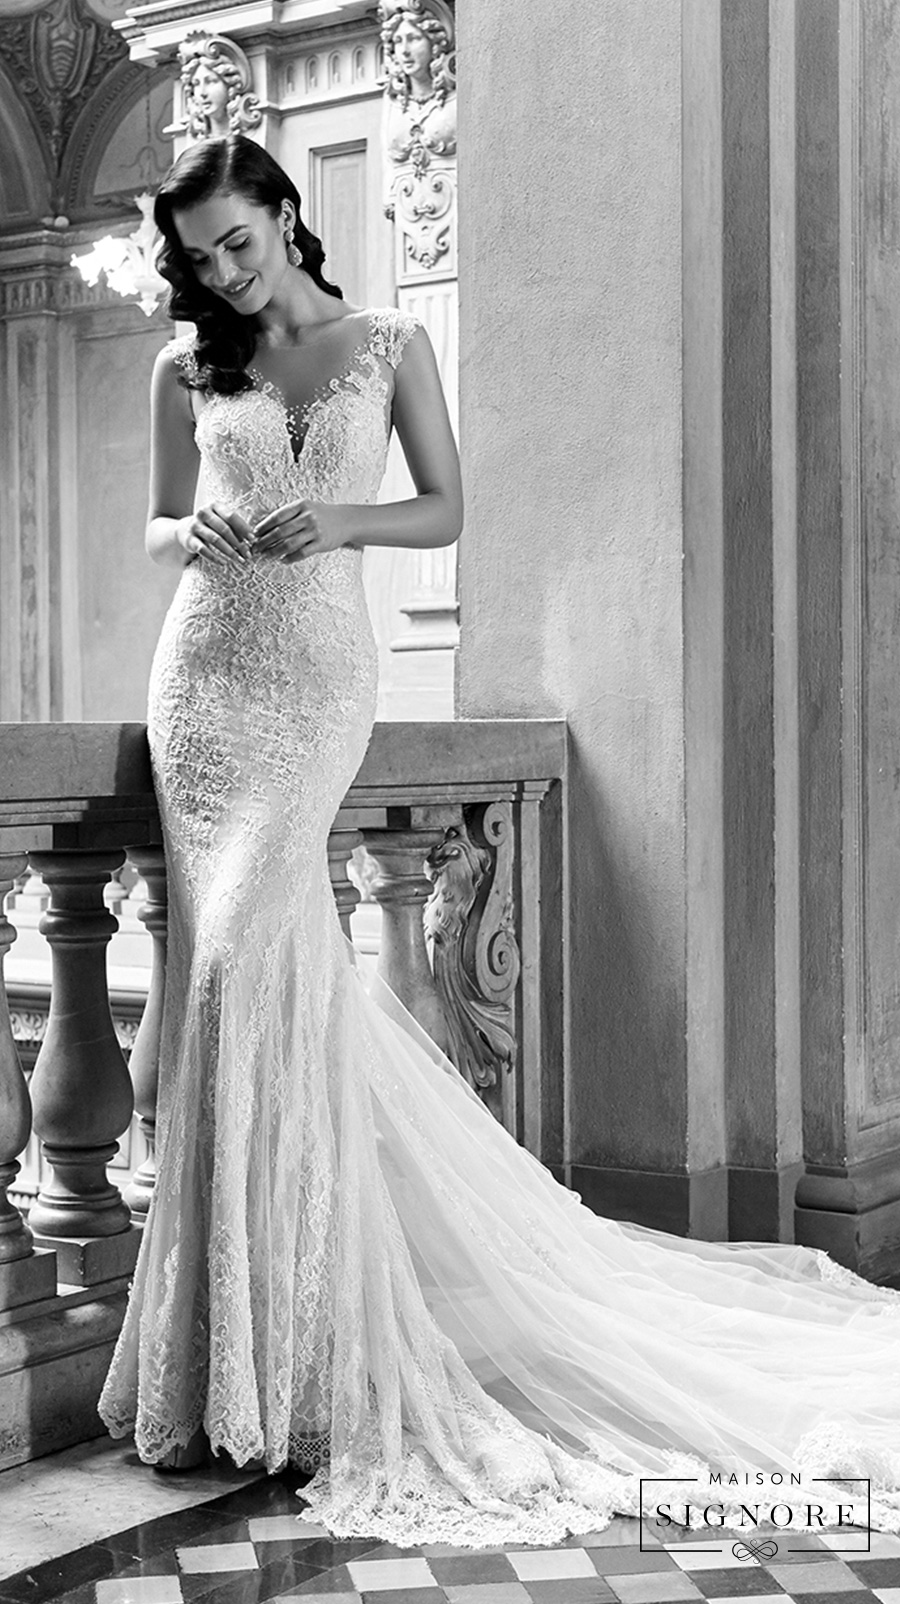 maison signore excellence long sleeves wedding gown 2